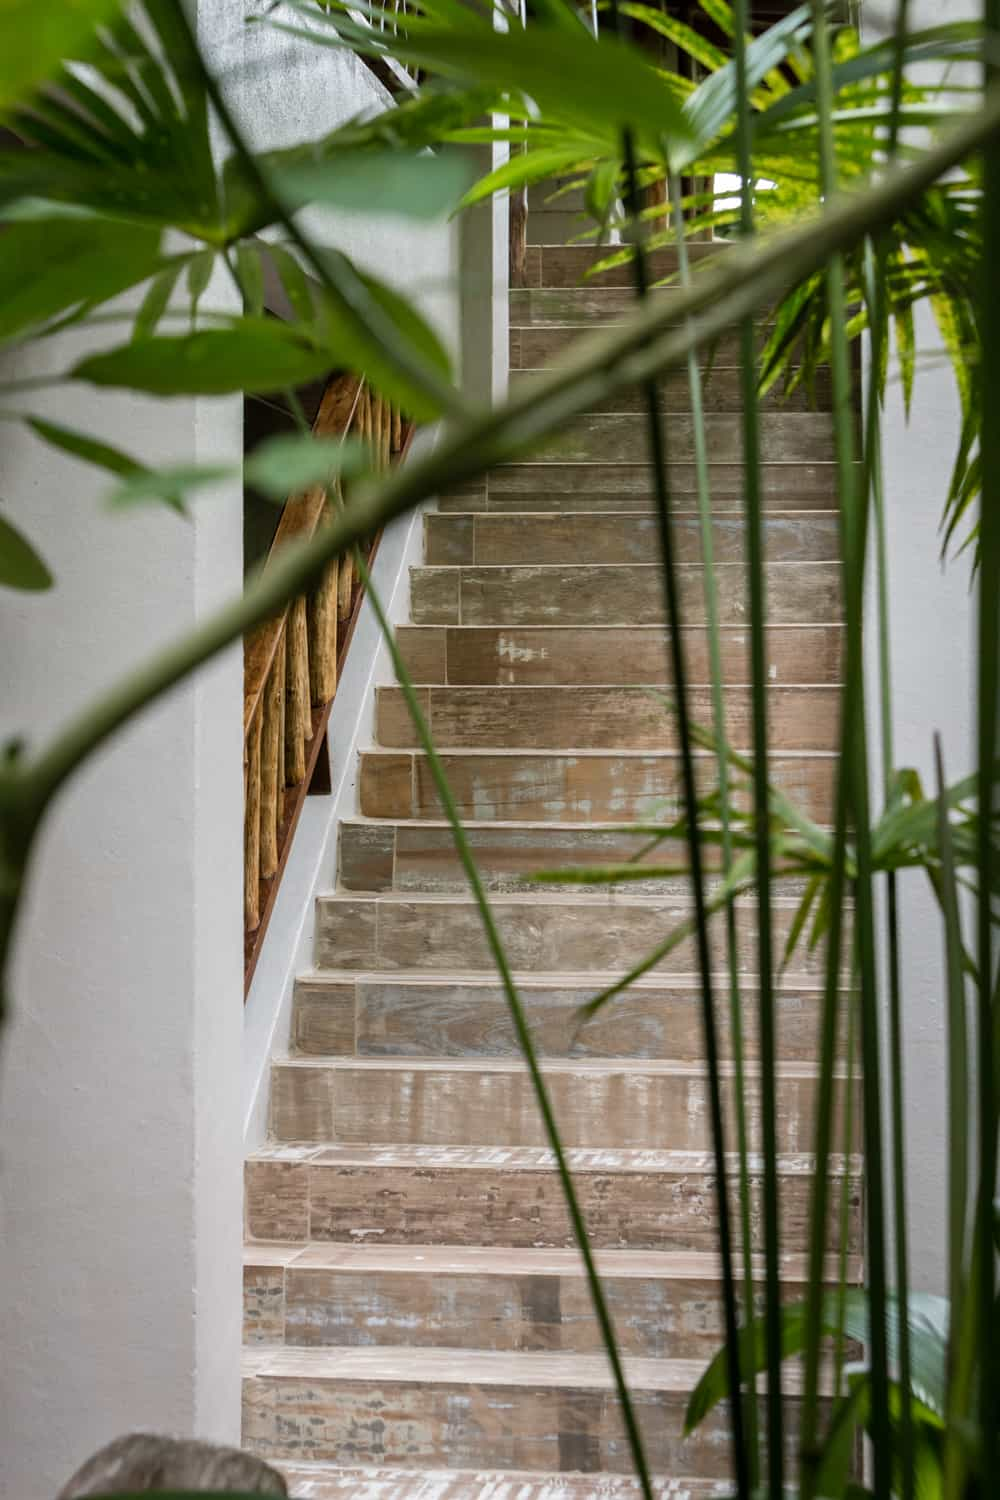 Stairs for standard accommodations at Lost Iguana Resort, La Fortuna.